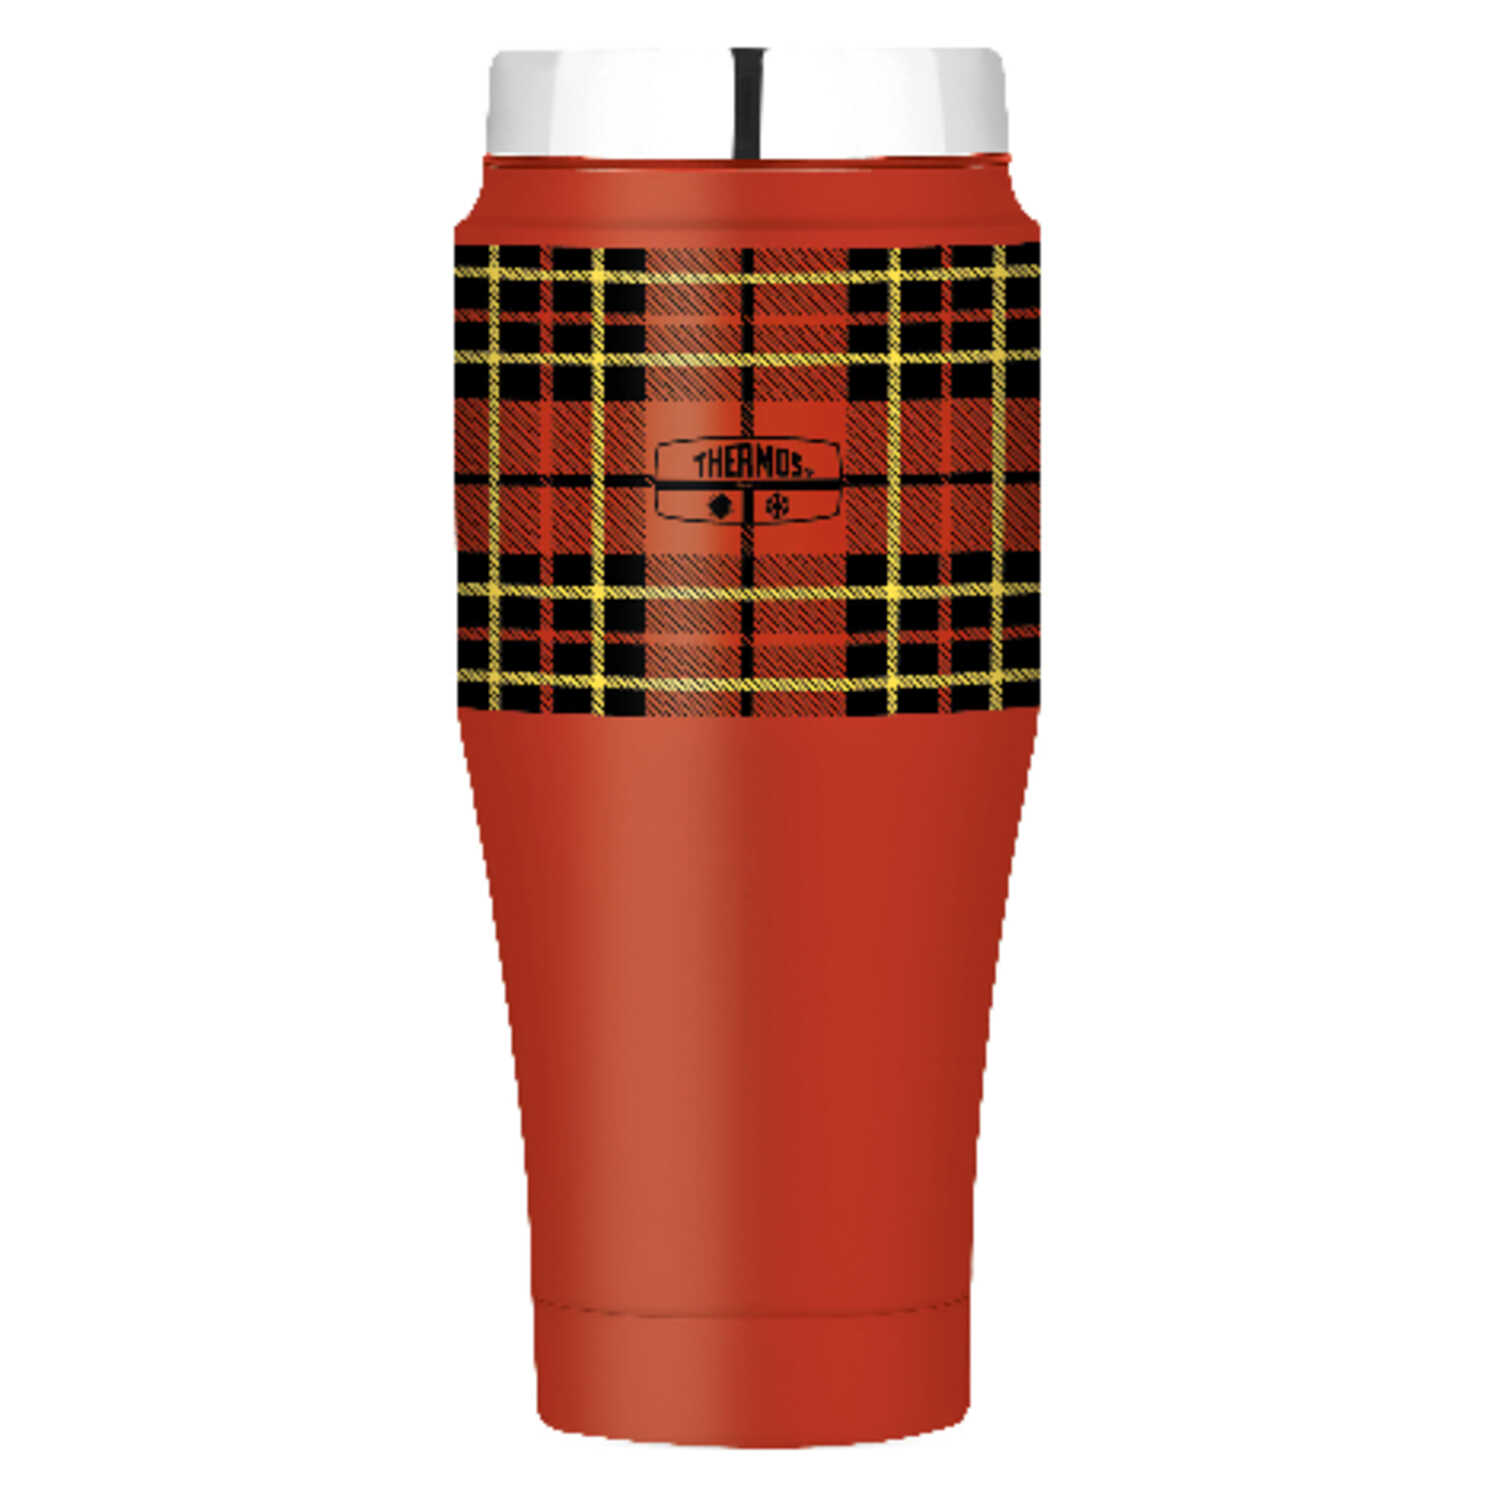 Thermos  Red Plaid  Stainless Steel  Travel Tumbler  BPA Free 16 oz.